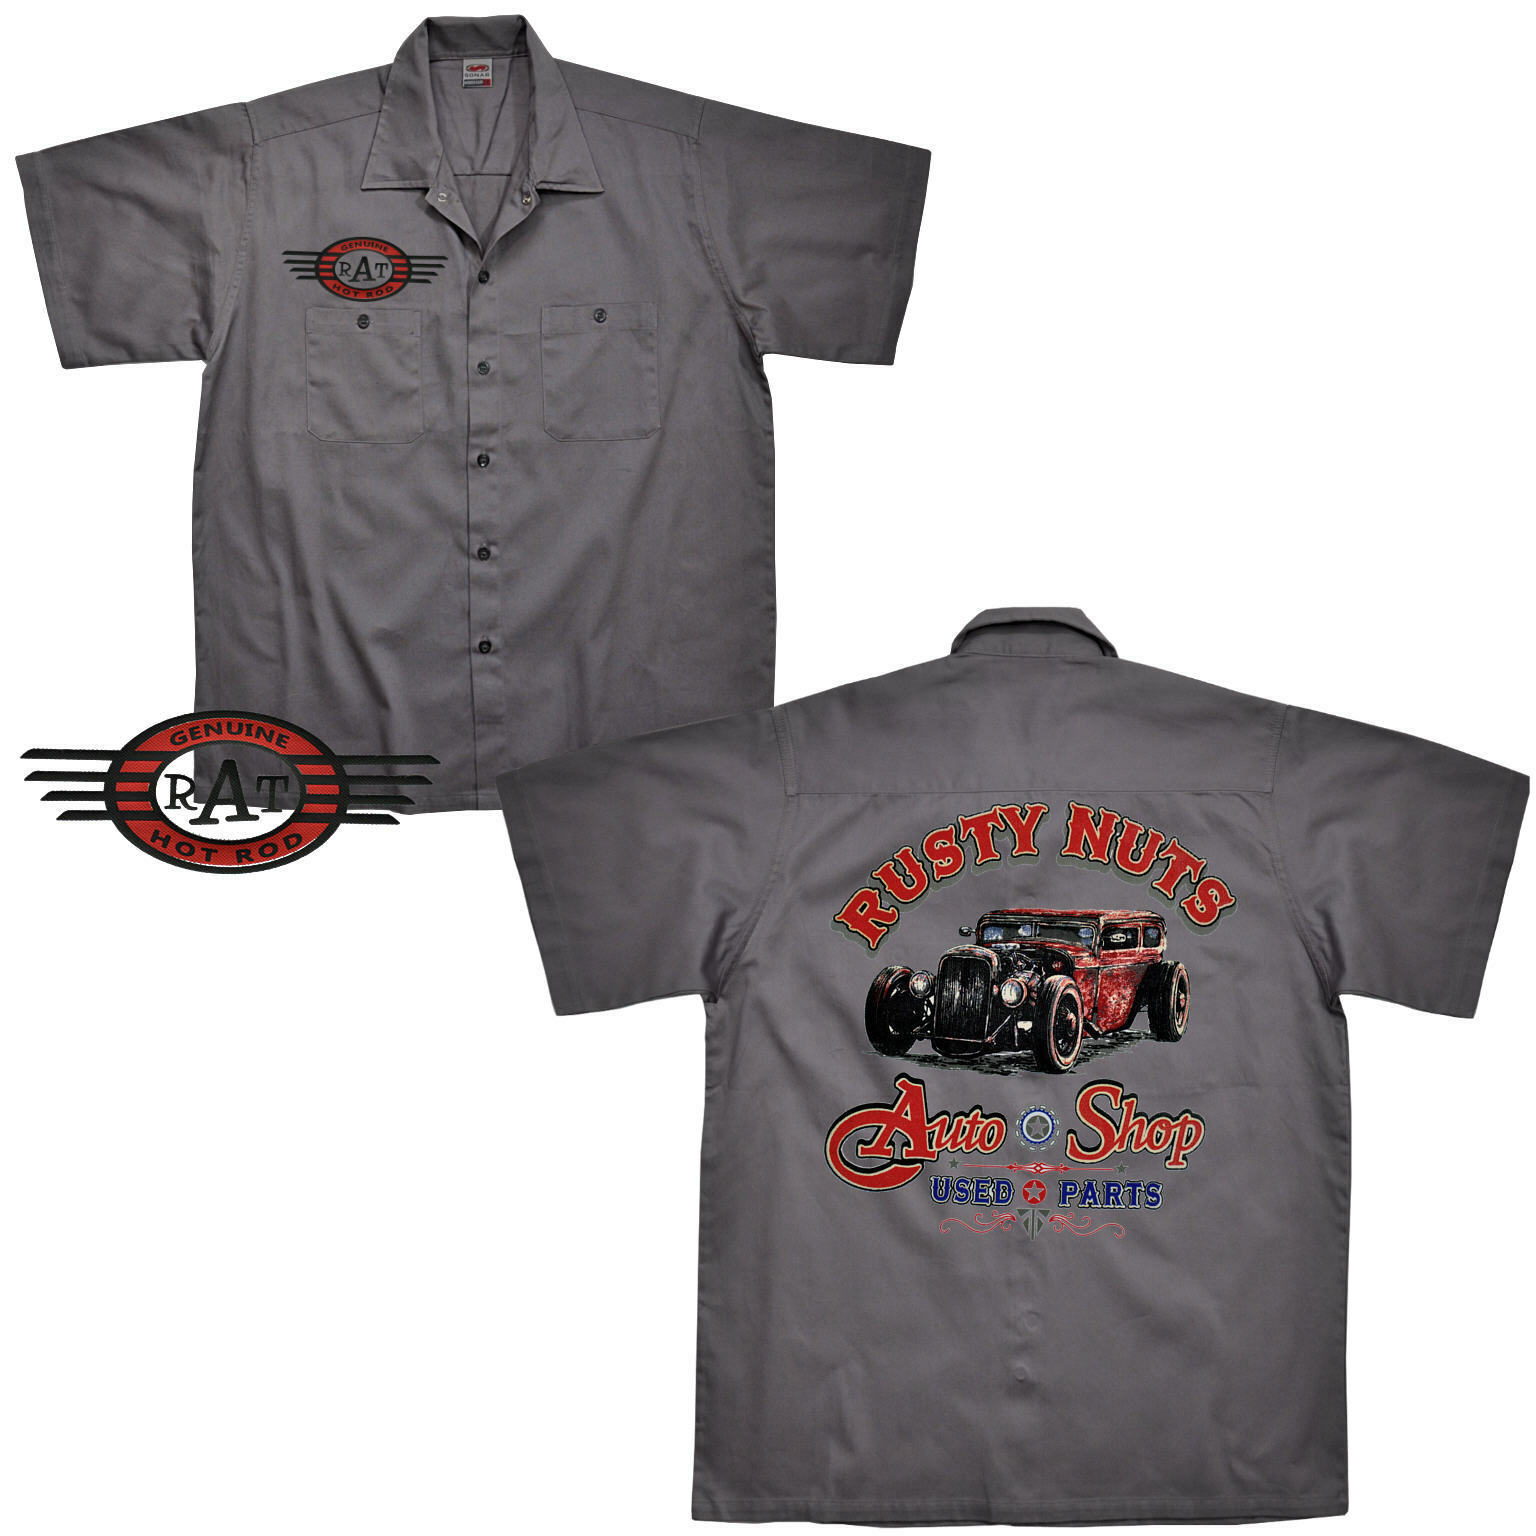 Auto Sportiva D'Epoca Rockabilly Officina Worker-Shirt Kustom Camicia 1177